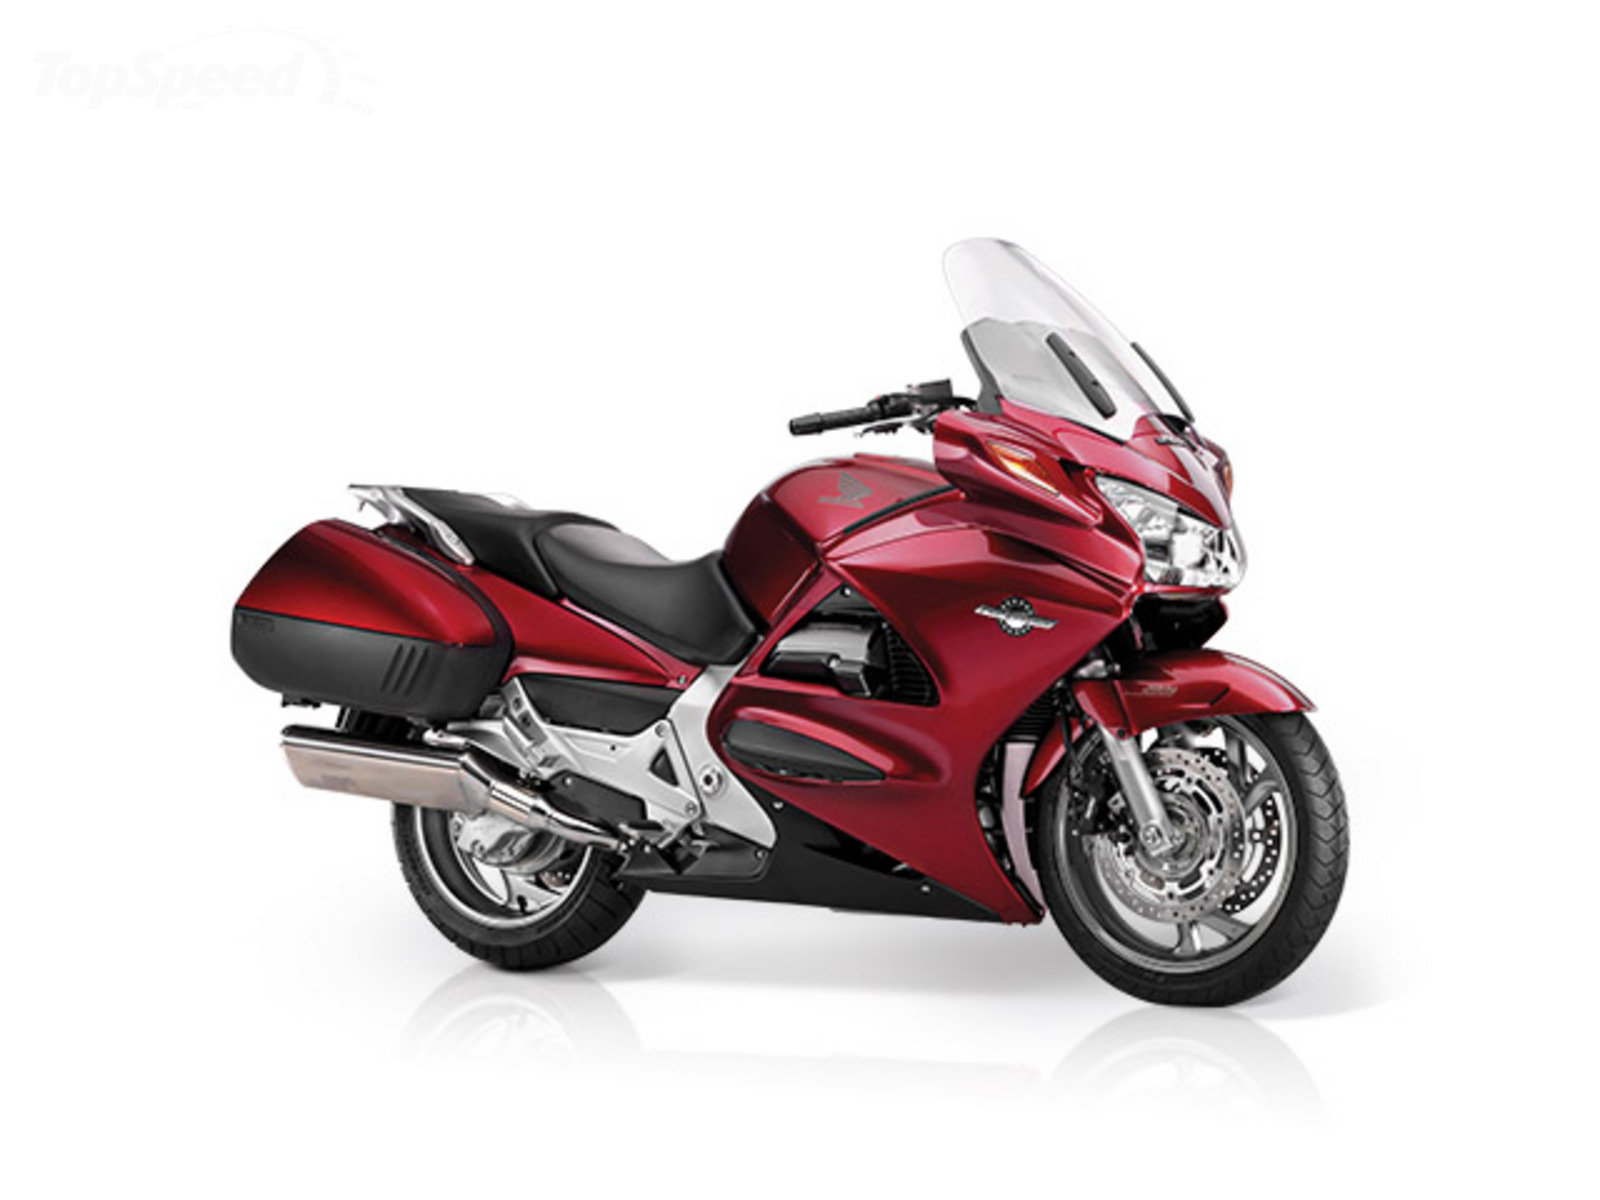 2014 honda st1300 pan european review top speed. Black Bedroom Furniture Sets. Home Design Ideas